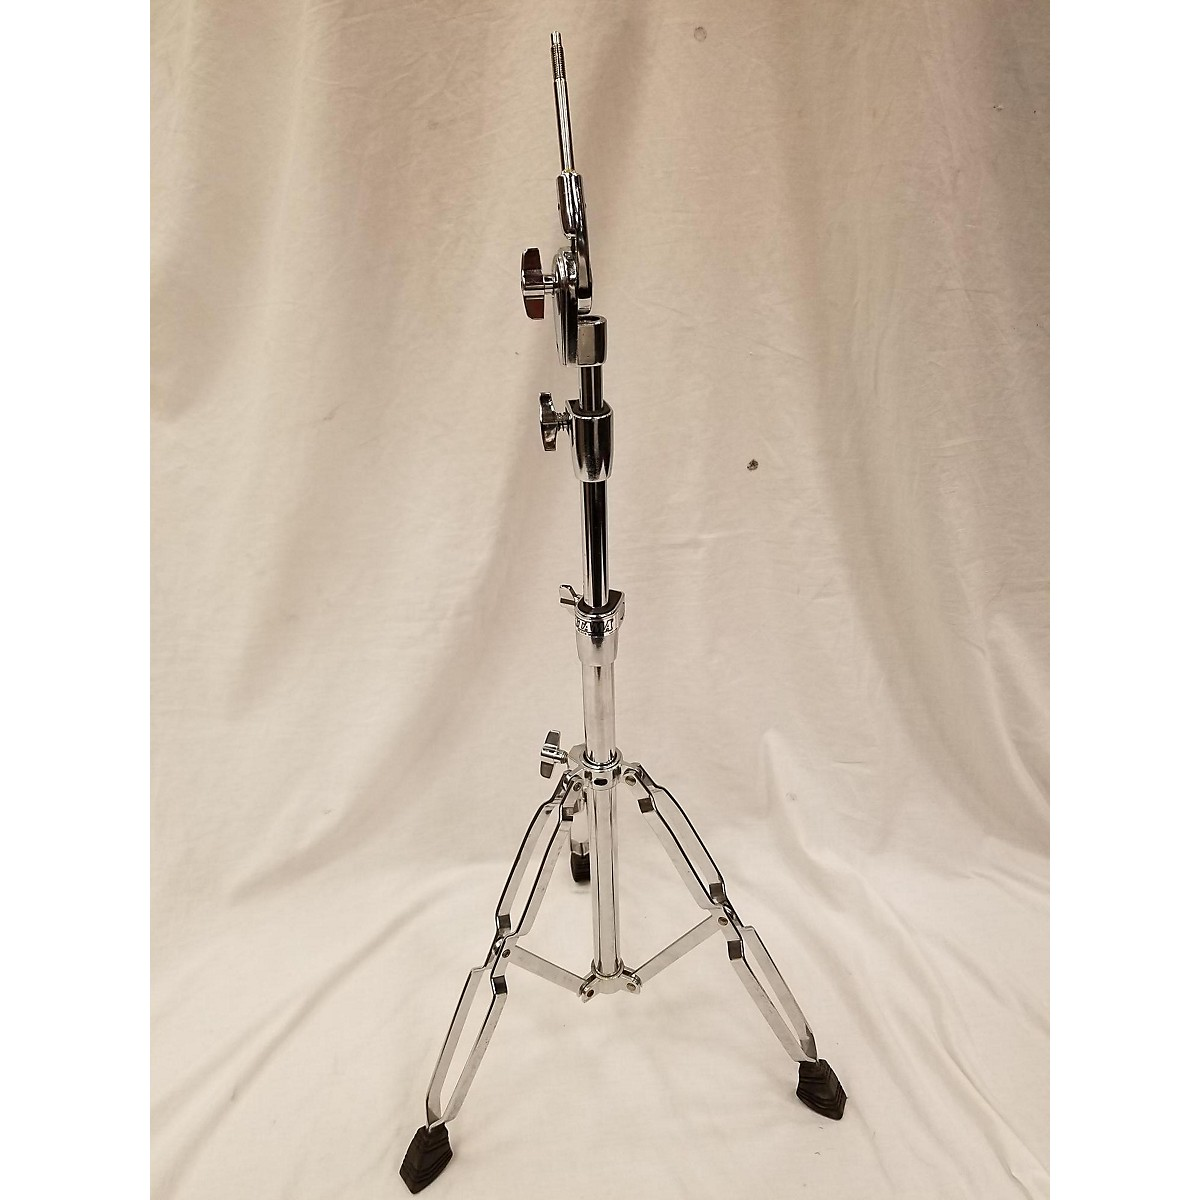 GP Percussion STAGE MASTER Cymbal Stand